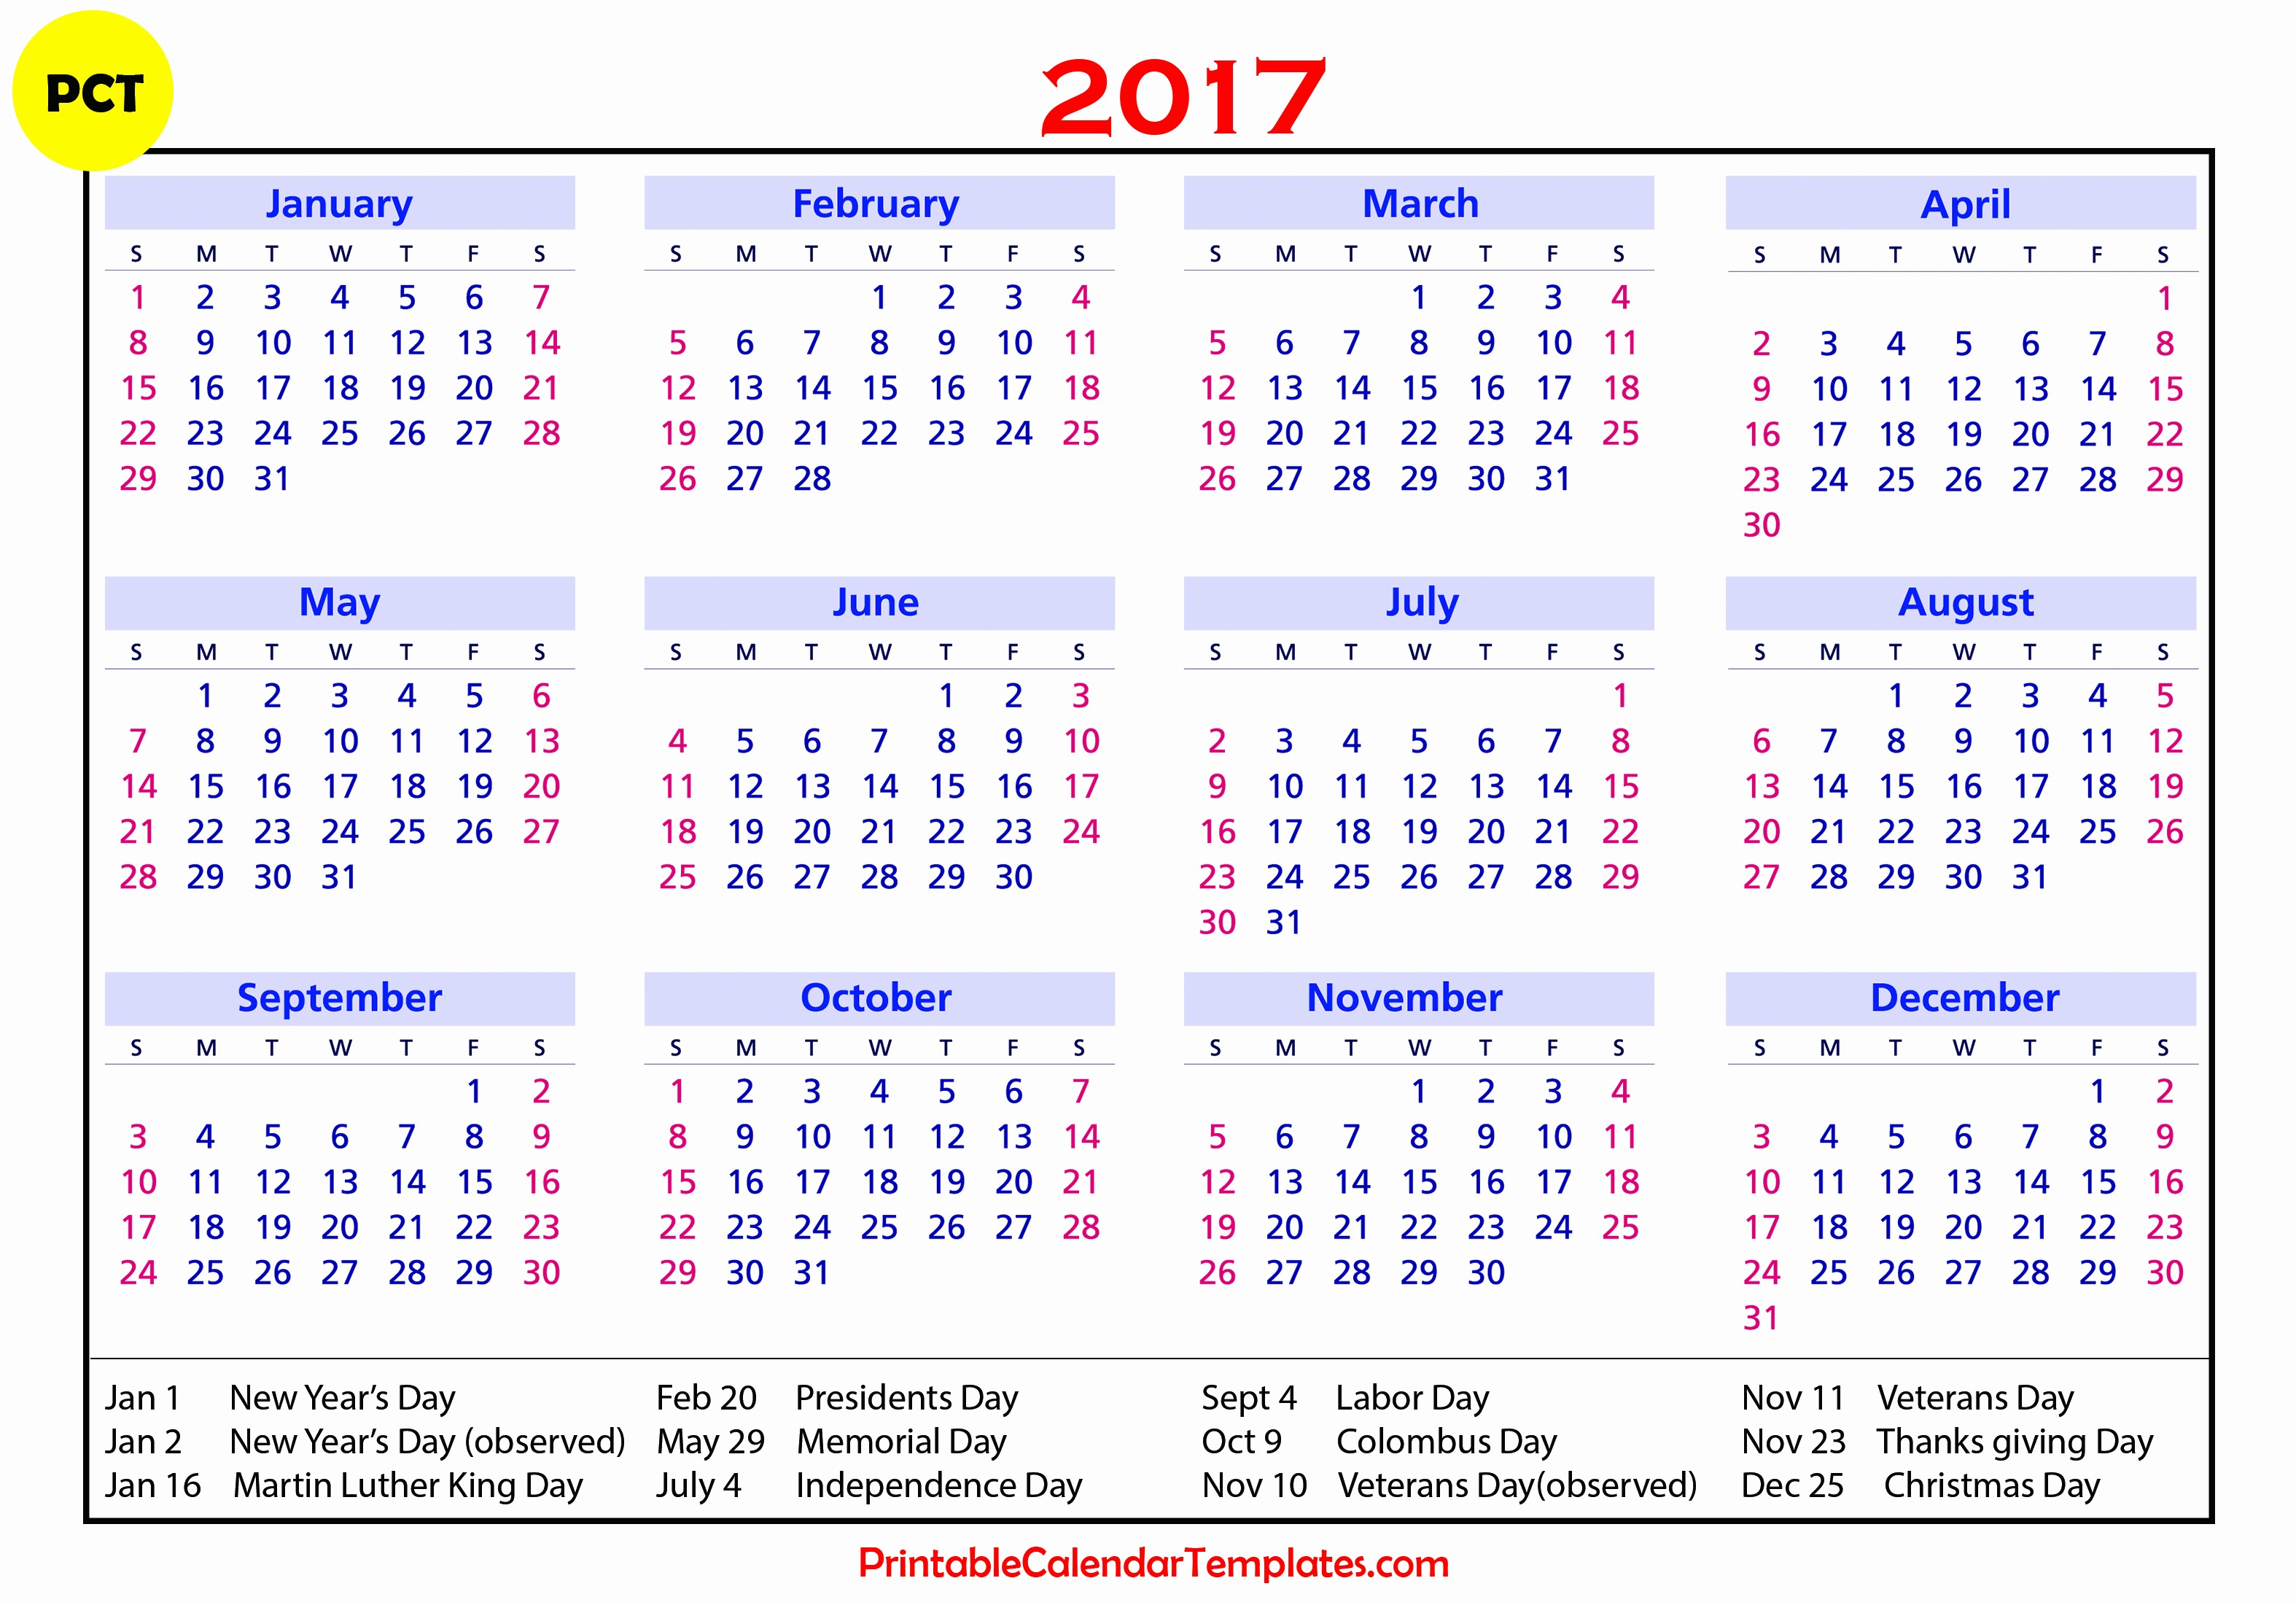 Free Printable Annual Calendar 2017 Best Of 2017 Calendar with Holidays